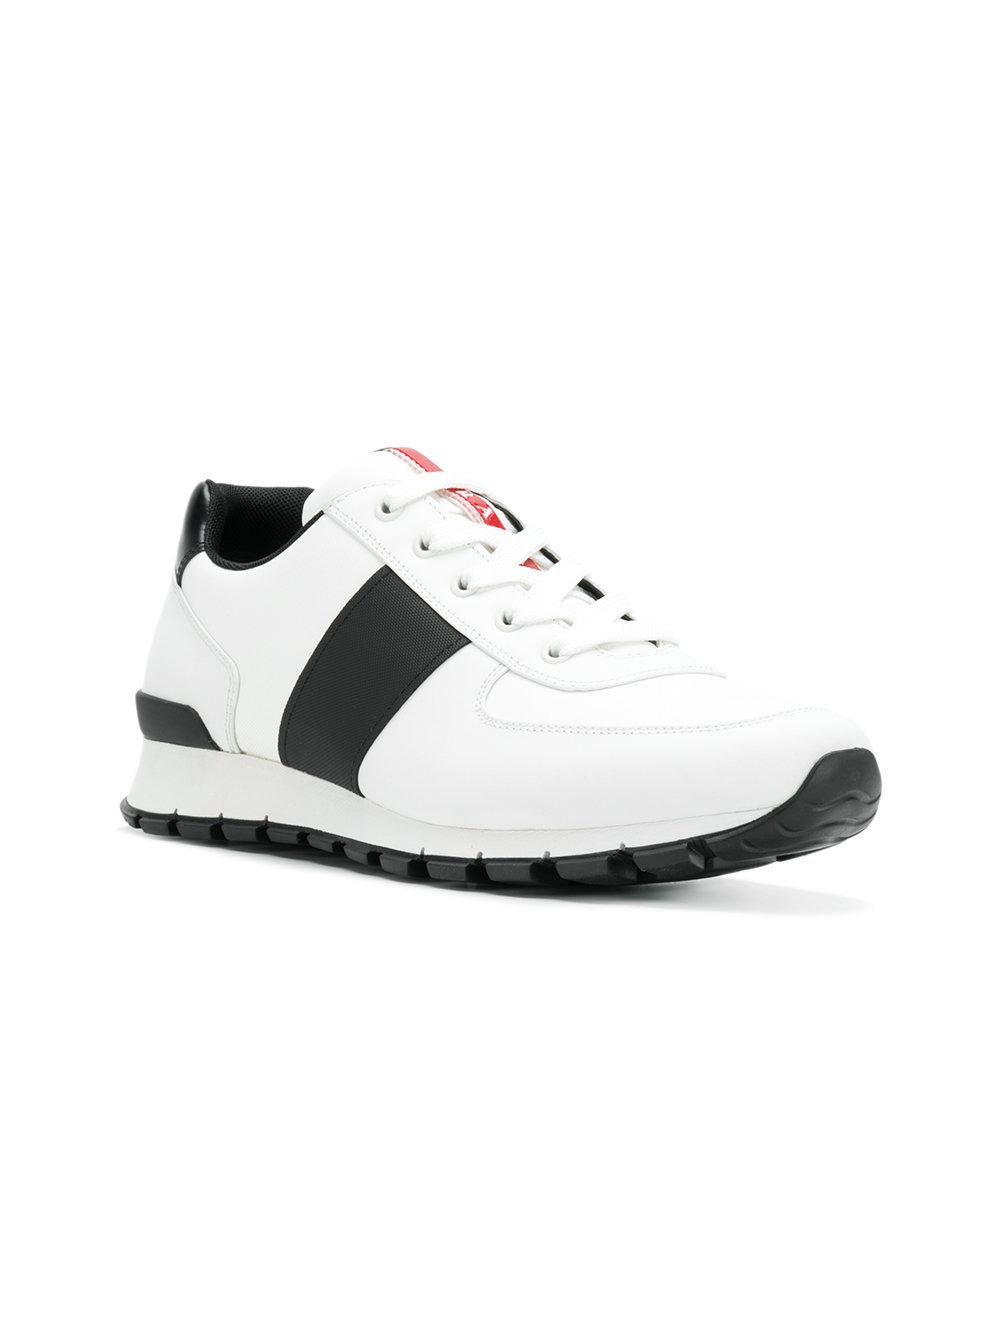 sports shoes fed96 10697 prada-White-Sporty-Panelled-Sneakers.jpeg